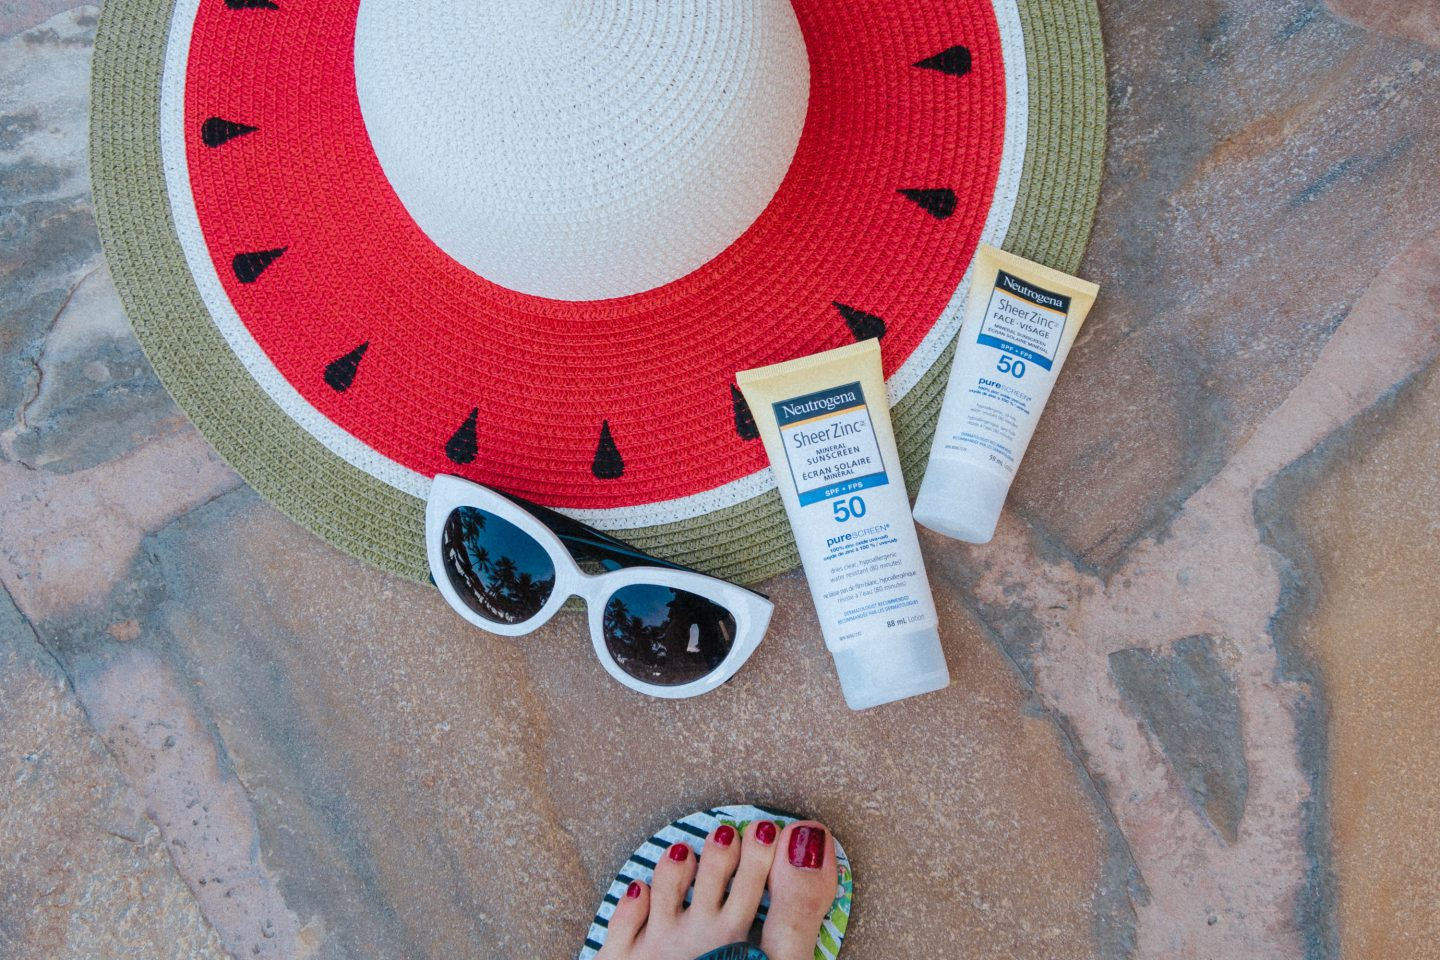 Using Neutrogena's Sheer Zinc Mineral Sunscreen to protect my skin against the summer rays